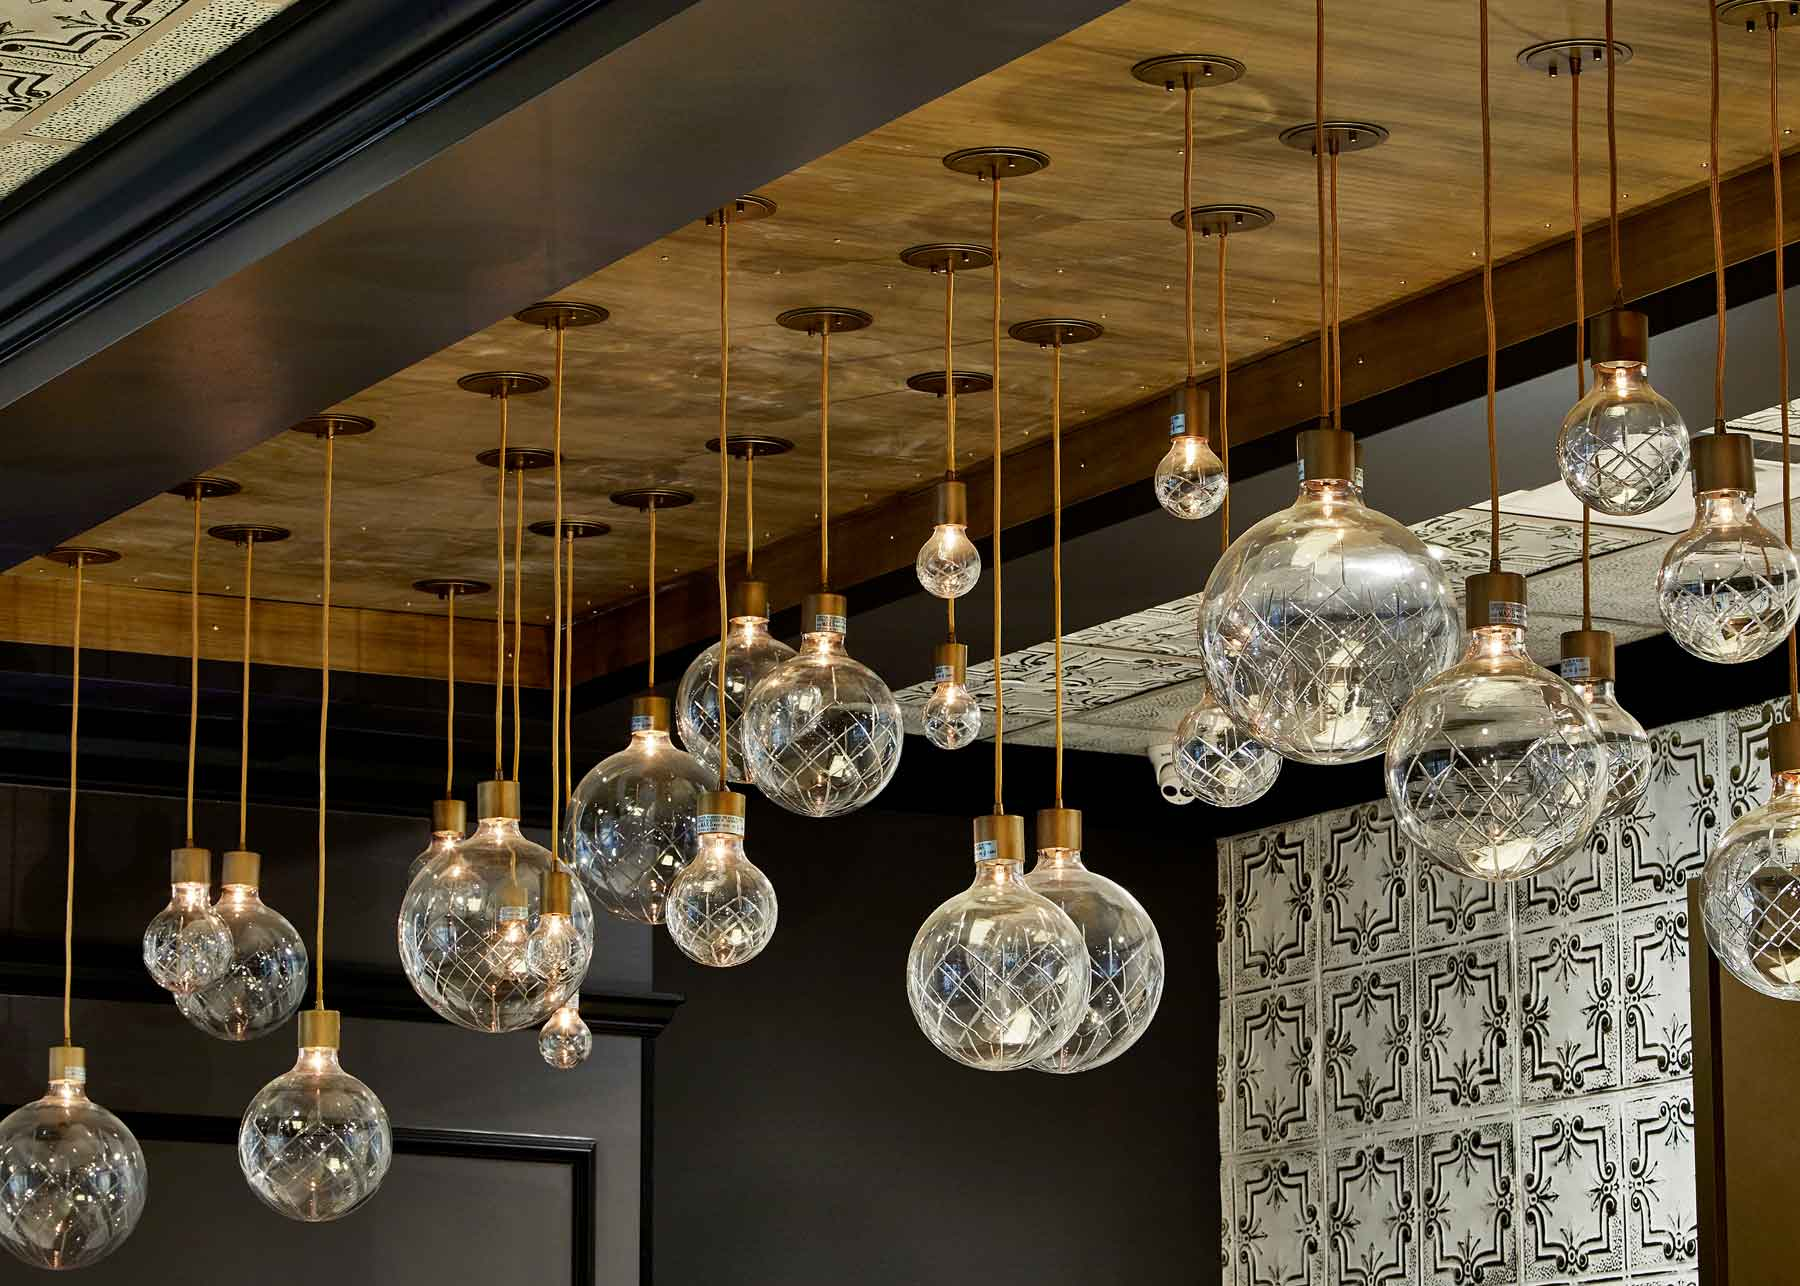 Many ornate crystal globe lights of different sizes hang from a wood toned ceiling